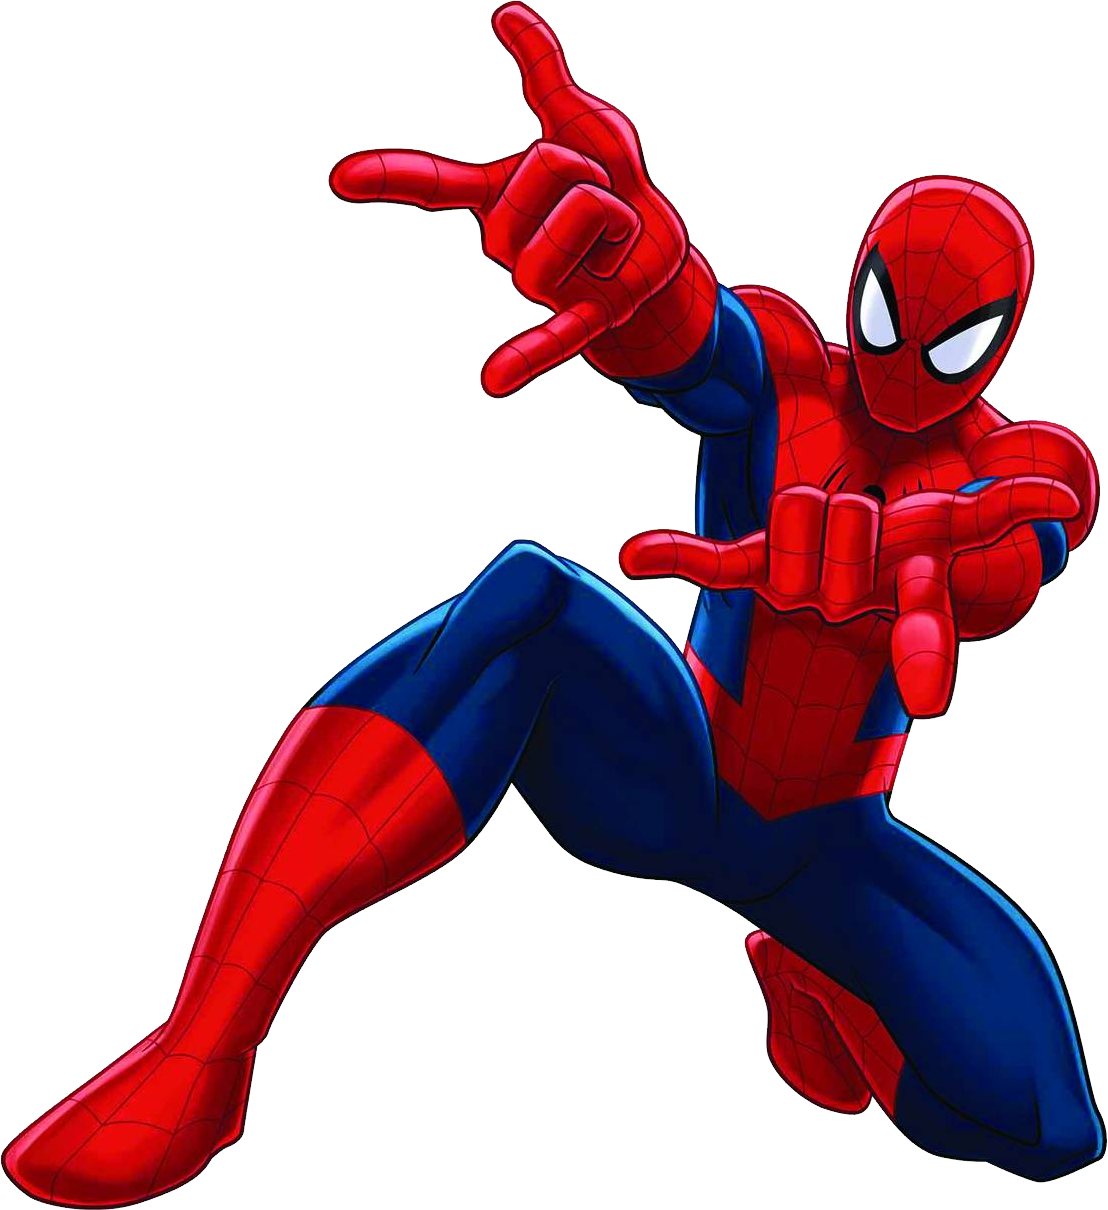 Spiderman comic transparent background. Leader clipart superhero